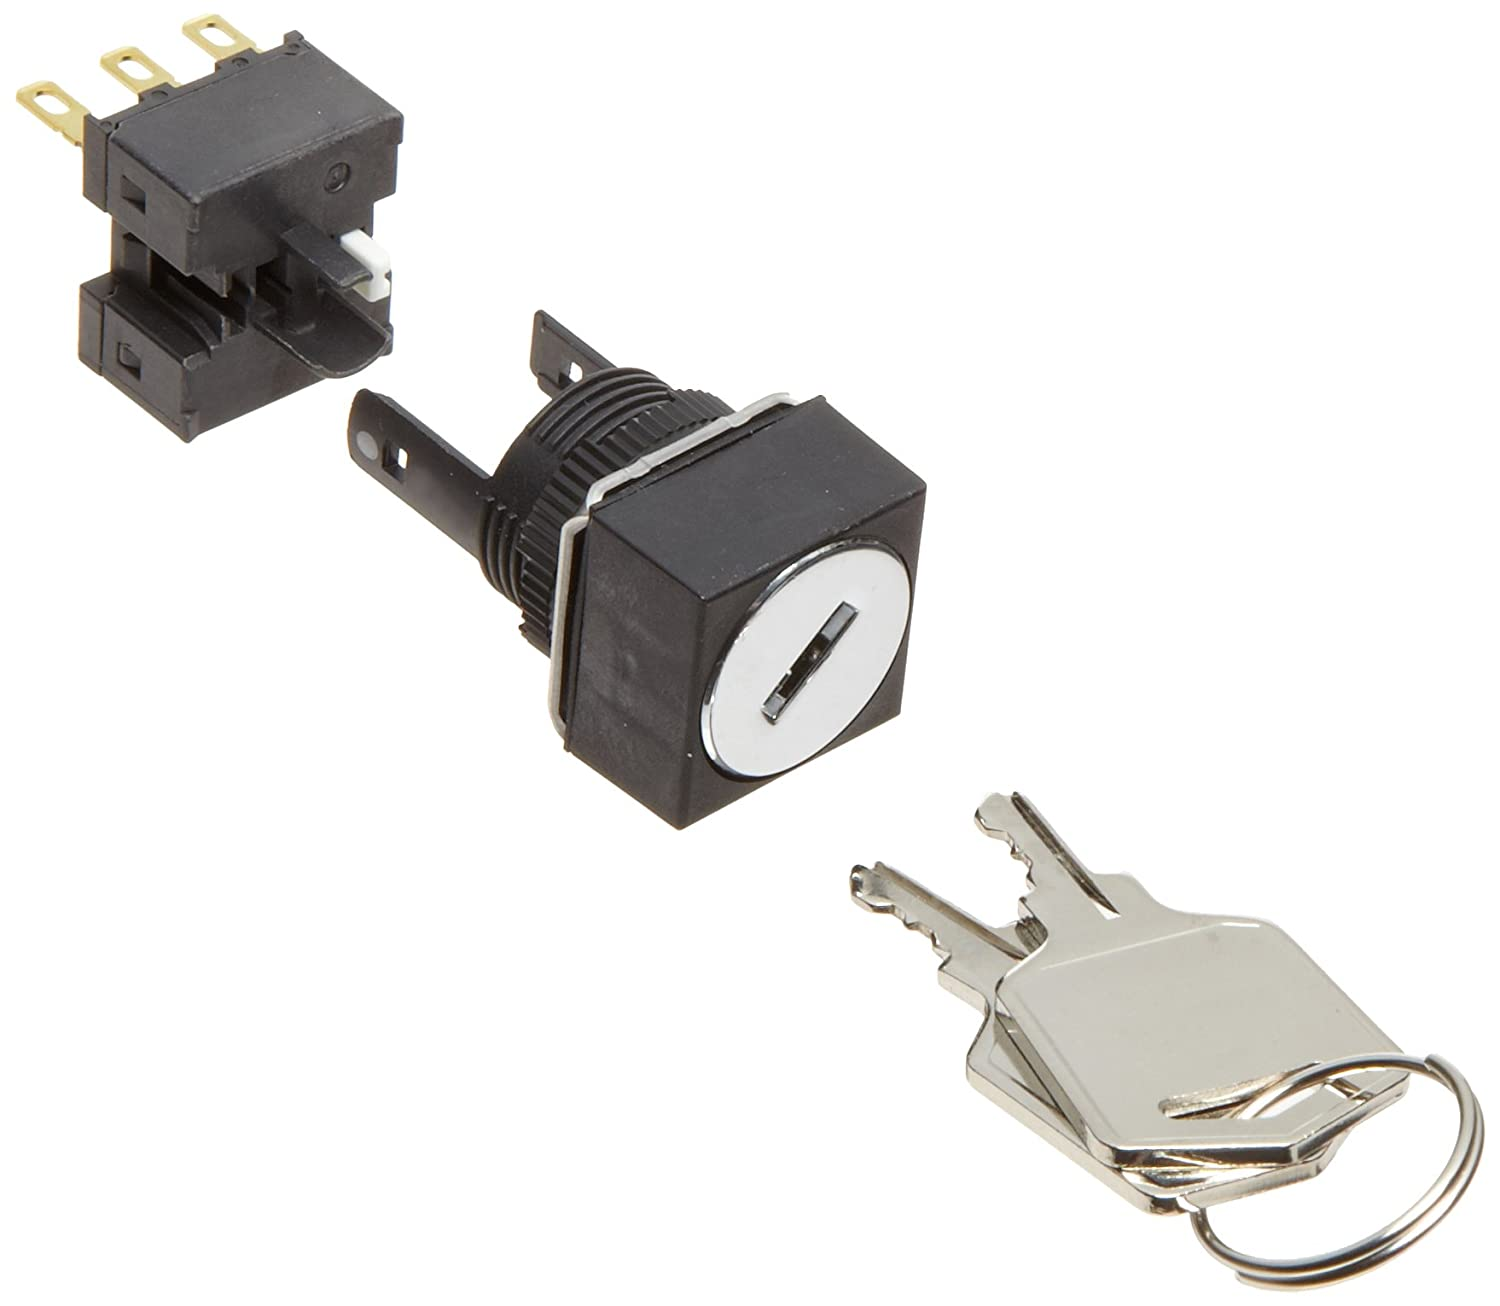 Omron A165K-A2ML-1 Key Type Selector and Switch, Solder Terminal, IP65 Oil Resistant, 16mm Mounting Aperture, 2 Notches, Manual Reset Method, Left Key Release Postion, Square,Single Pole Double Throw Contacts